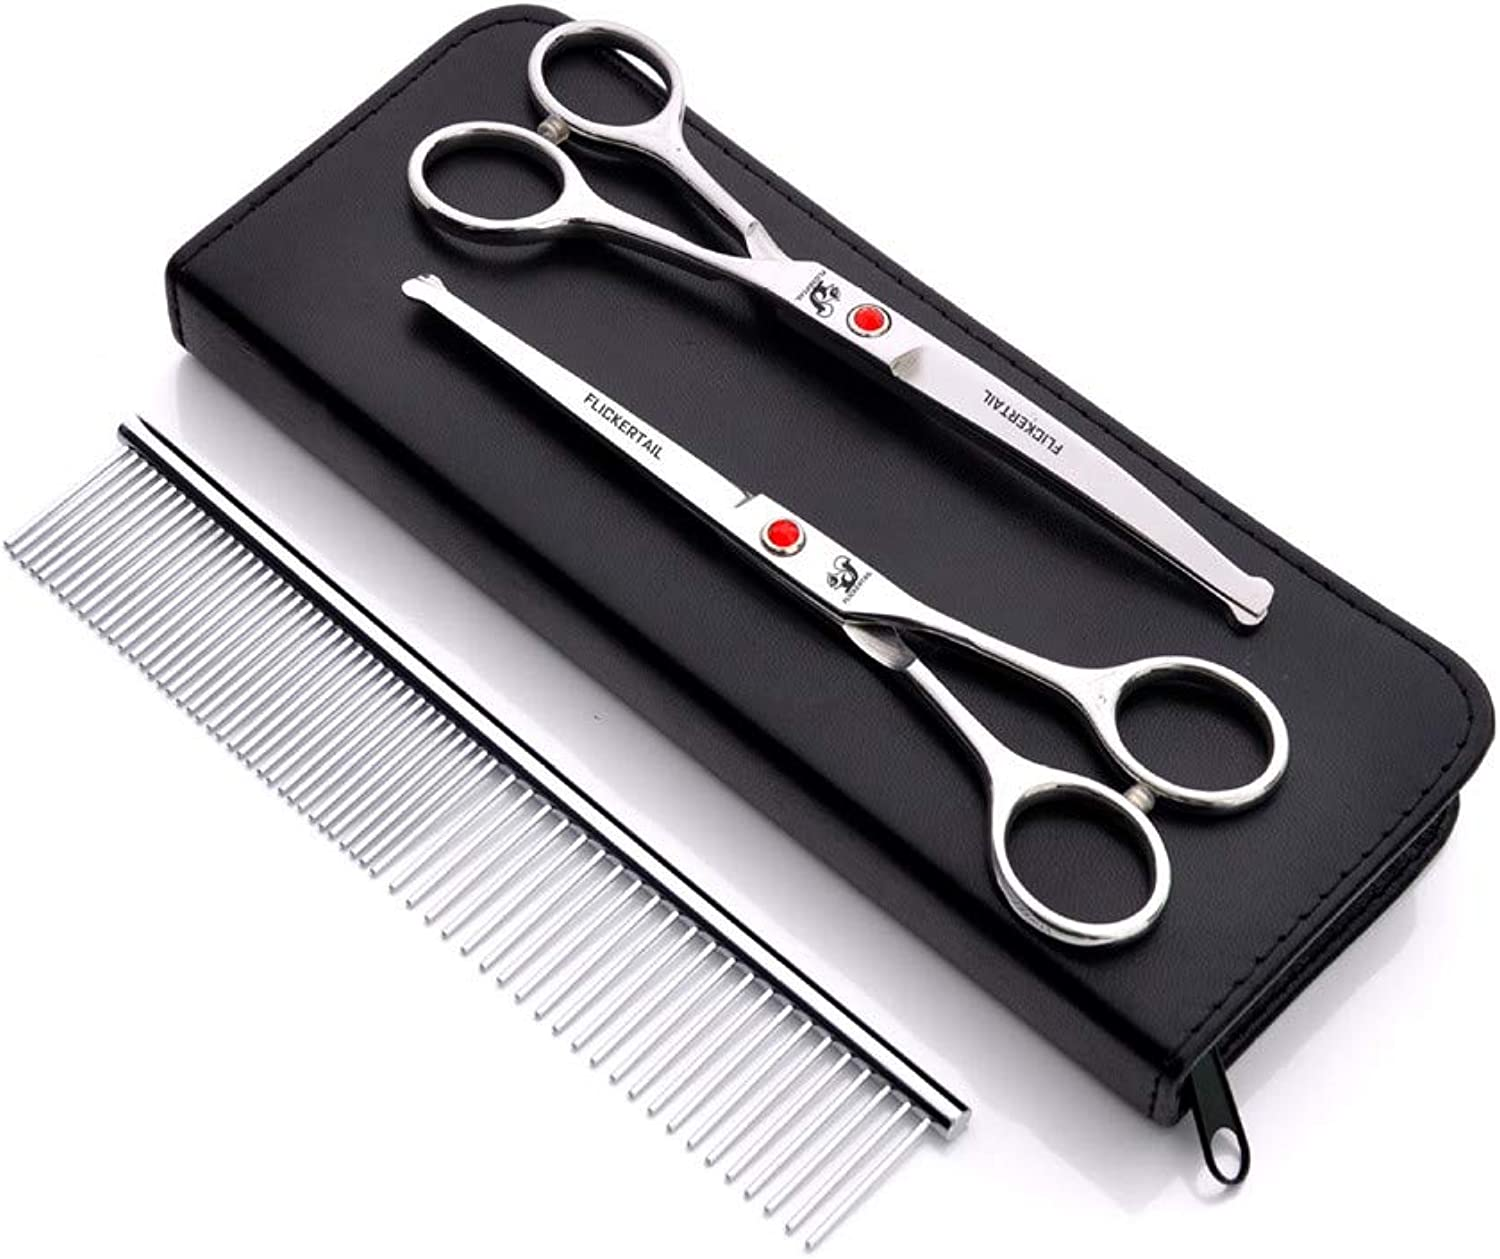 Dog Grooming Scissors Kit Rounded Tip Round Head Safety Curved Sharp Shears for Small or Large Dogs, Cats or Other Pets